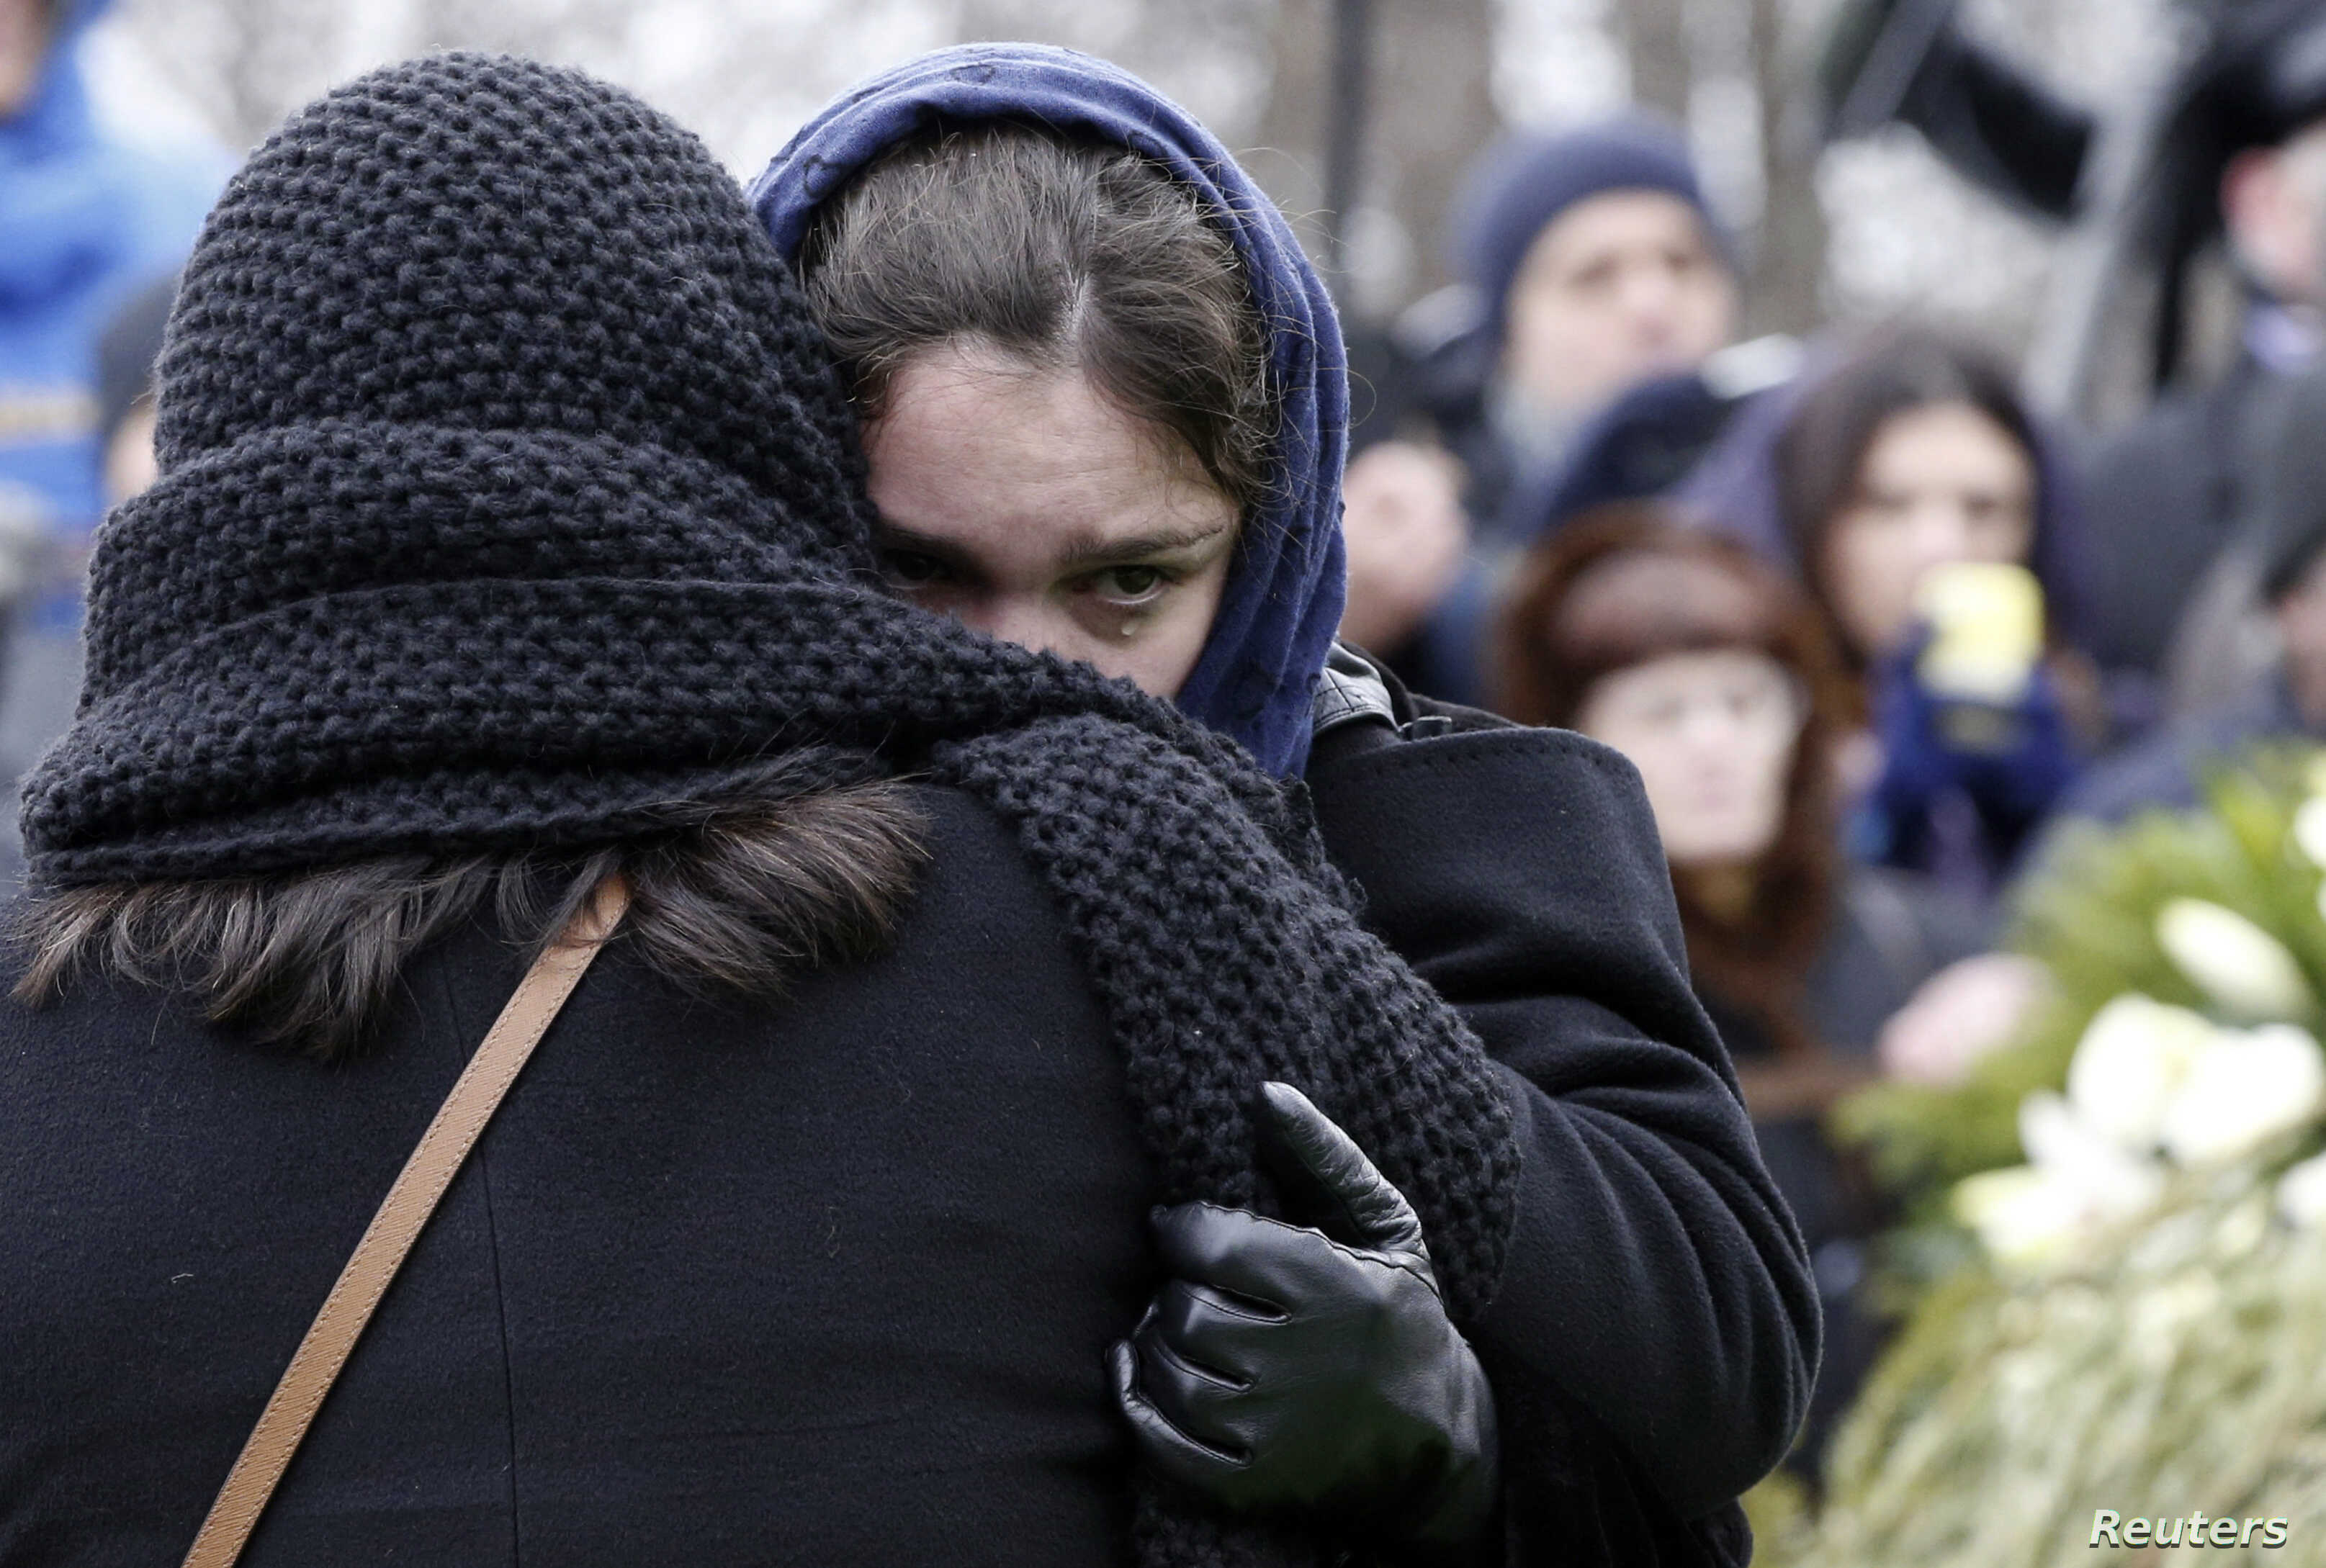 Zhanna, daughter of Russian leading opposition figure Boris Nemtsov, reacts during his funeral in Moscow, March 3, 2015. Thousands of Russians, many carrying red carnations, queued on Tuesday to pay their respects to Boris Nemtsov, the Kremlin critic